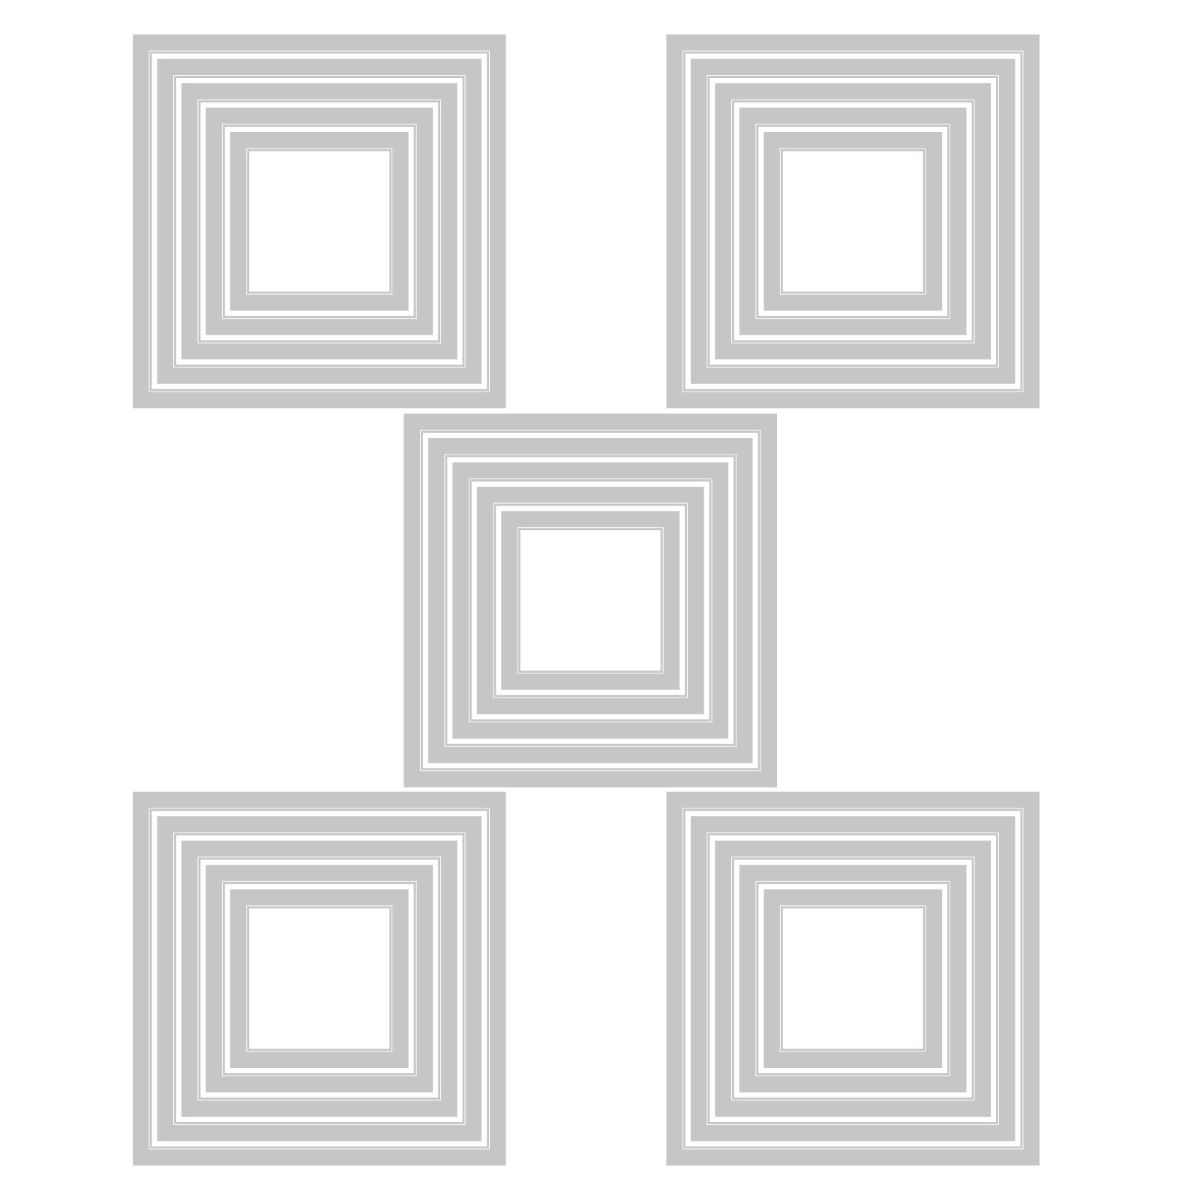 Sizzix Tim Holtz Squares Stacked Tiles Die Set